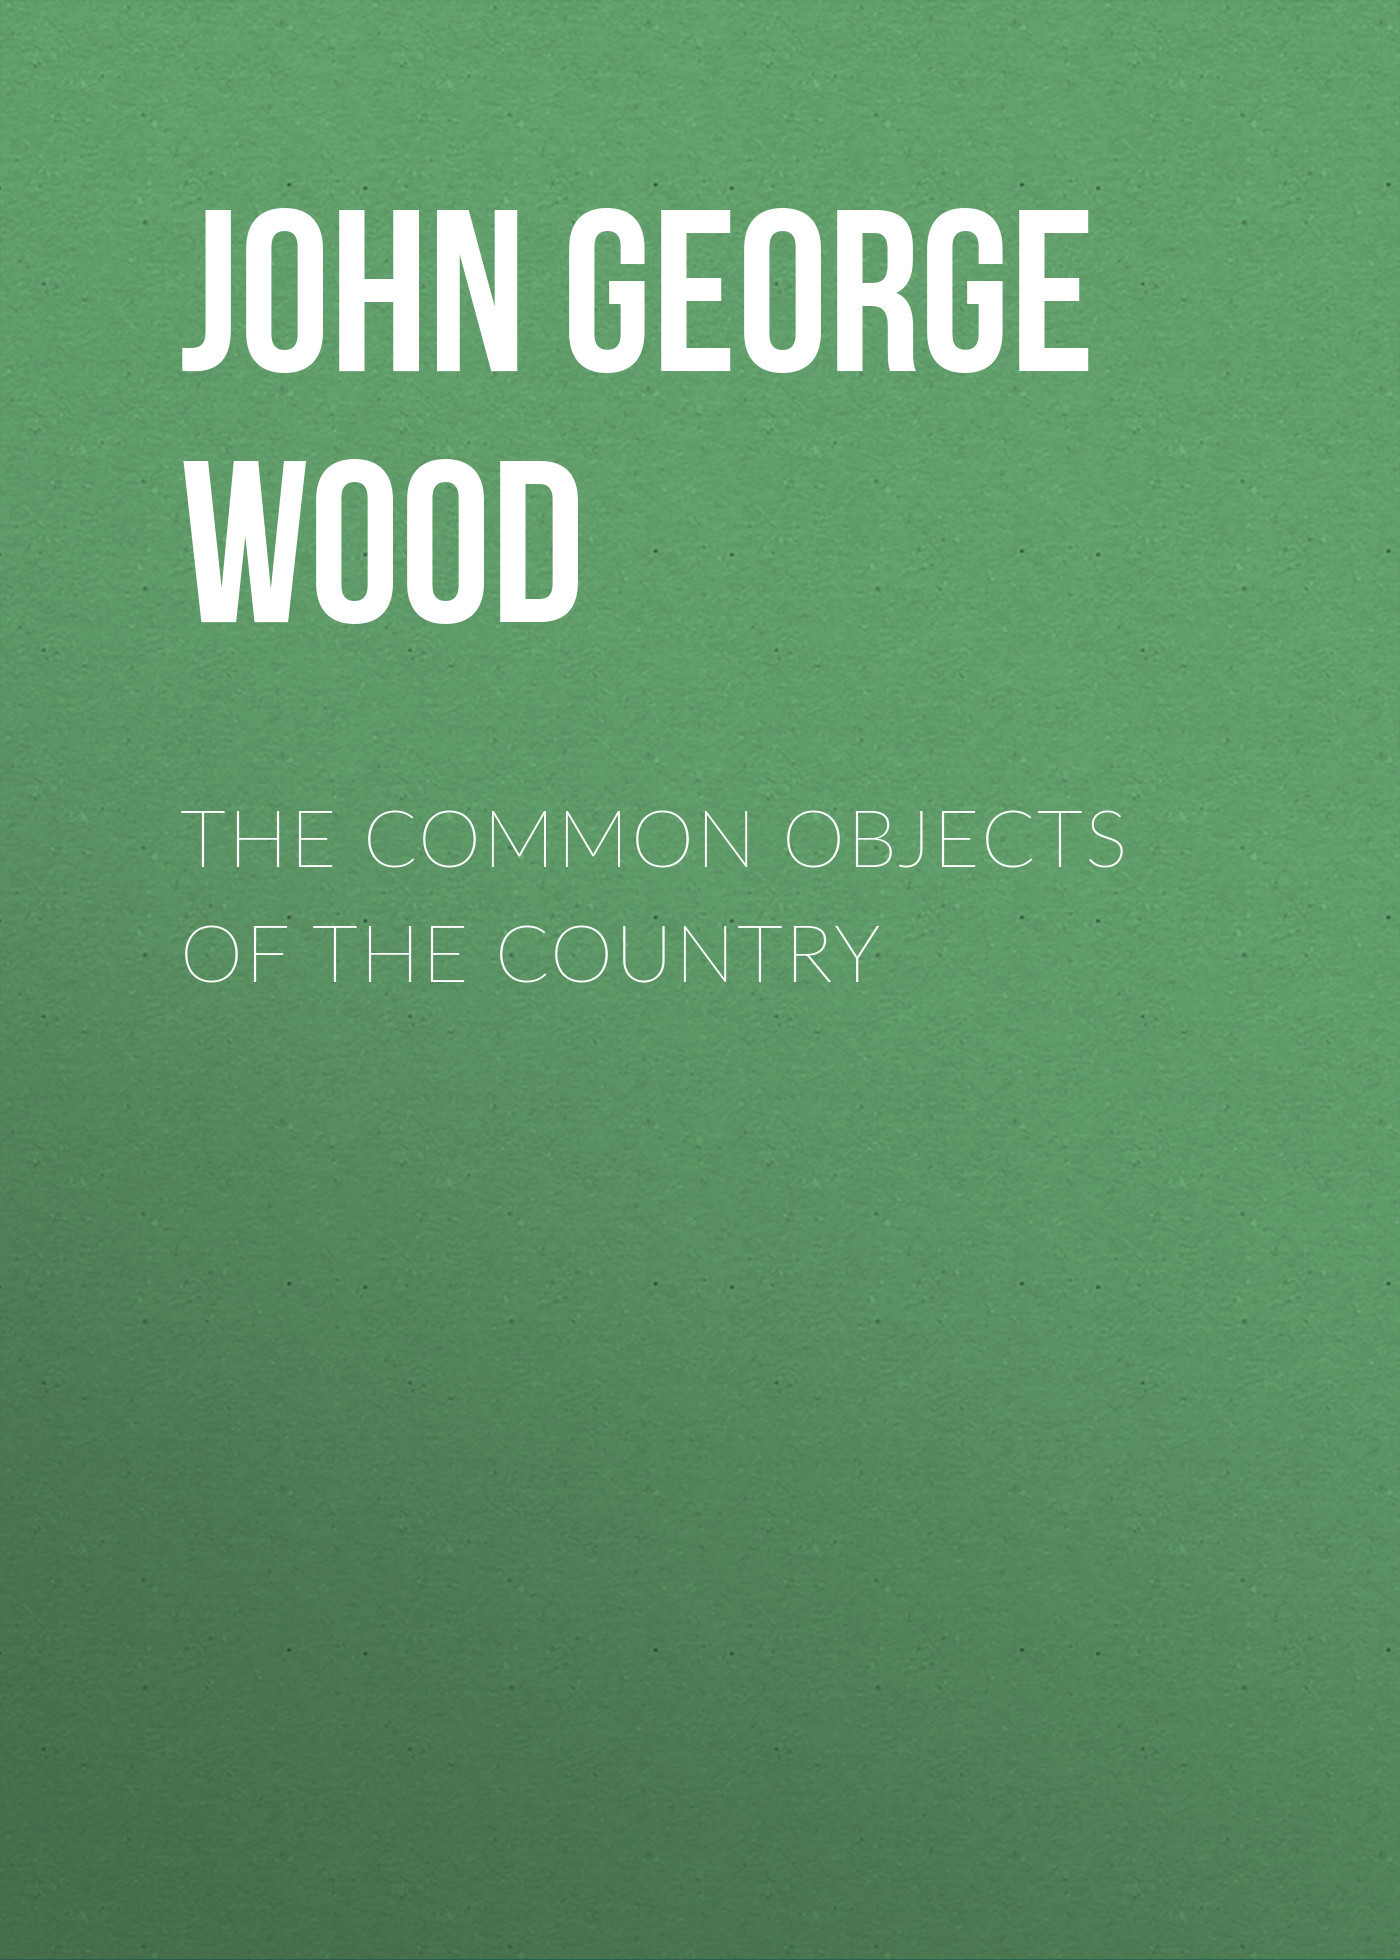 John George Wood The Common Objects of the Country 8 head chandelier wood wooden bottle bar restaurant european style of the ancient american country